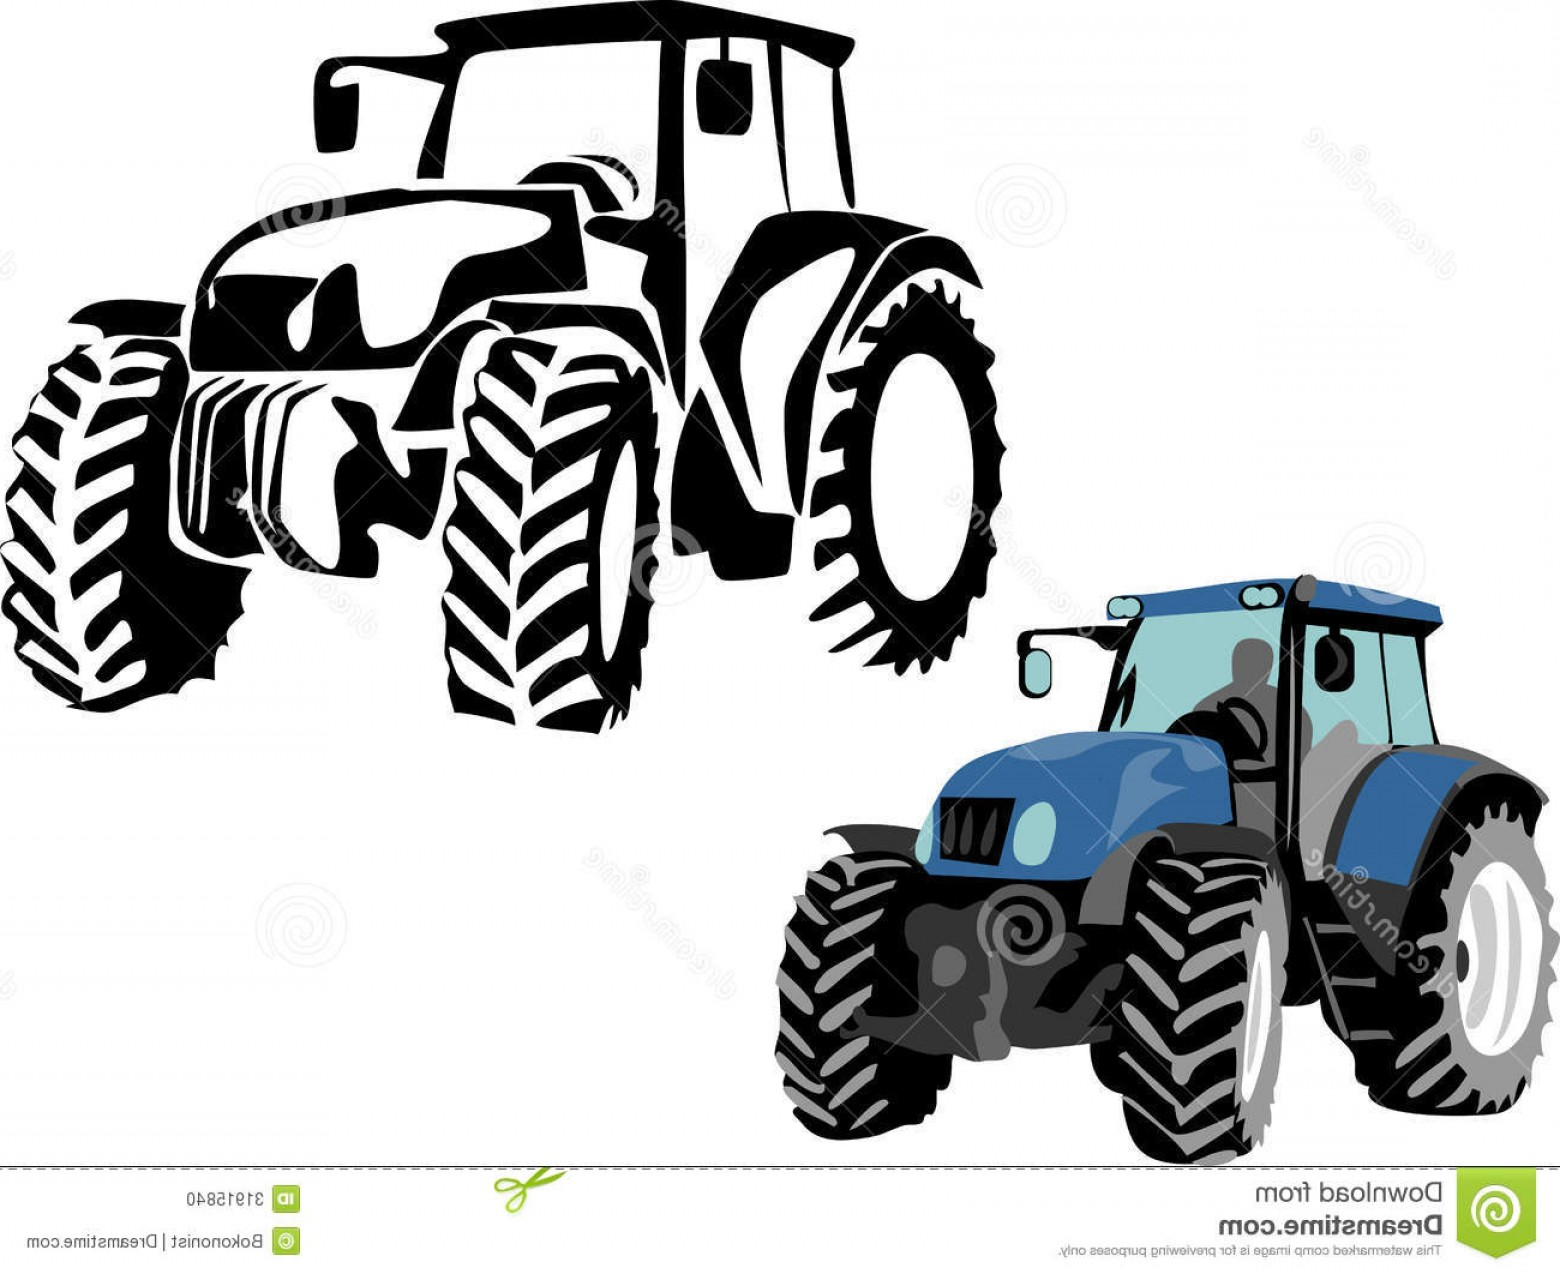 Free Tractor Vector: Stock Photo Tractor Stylized Black Color Illustrations Image